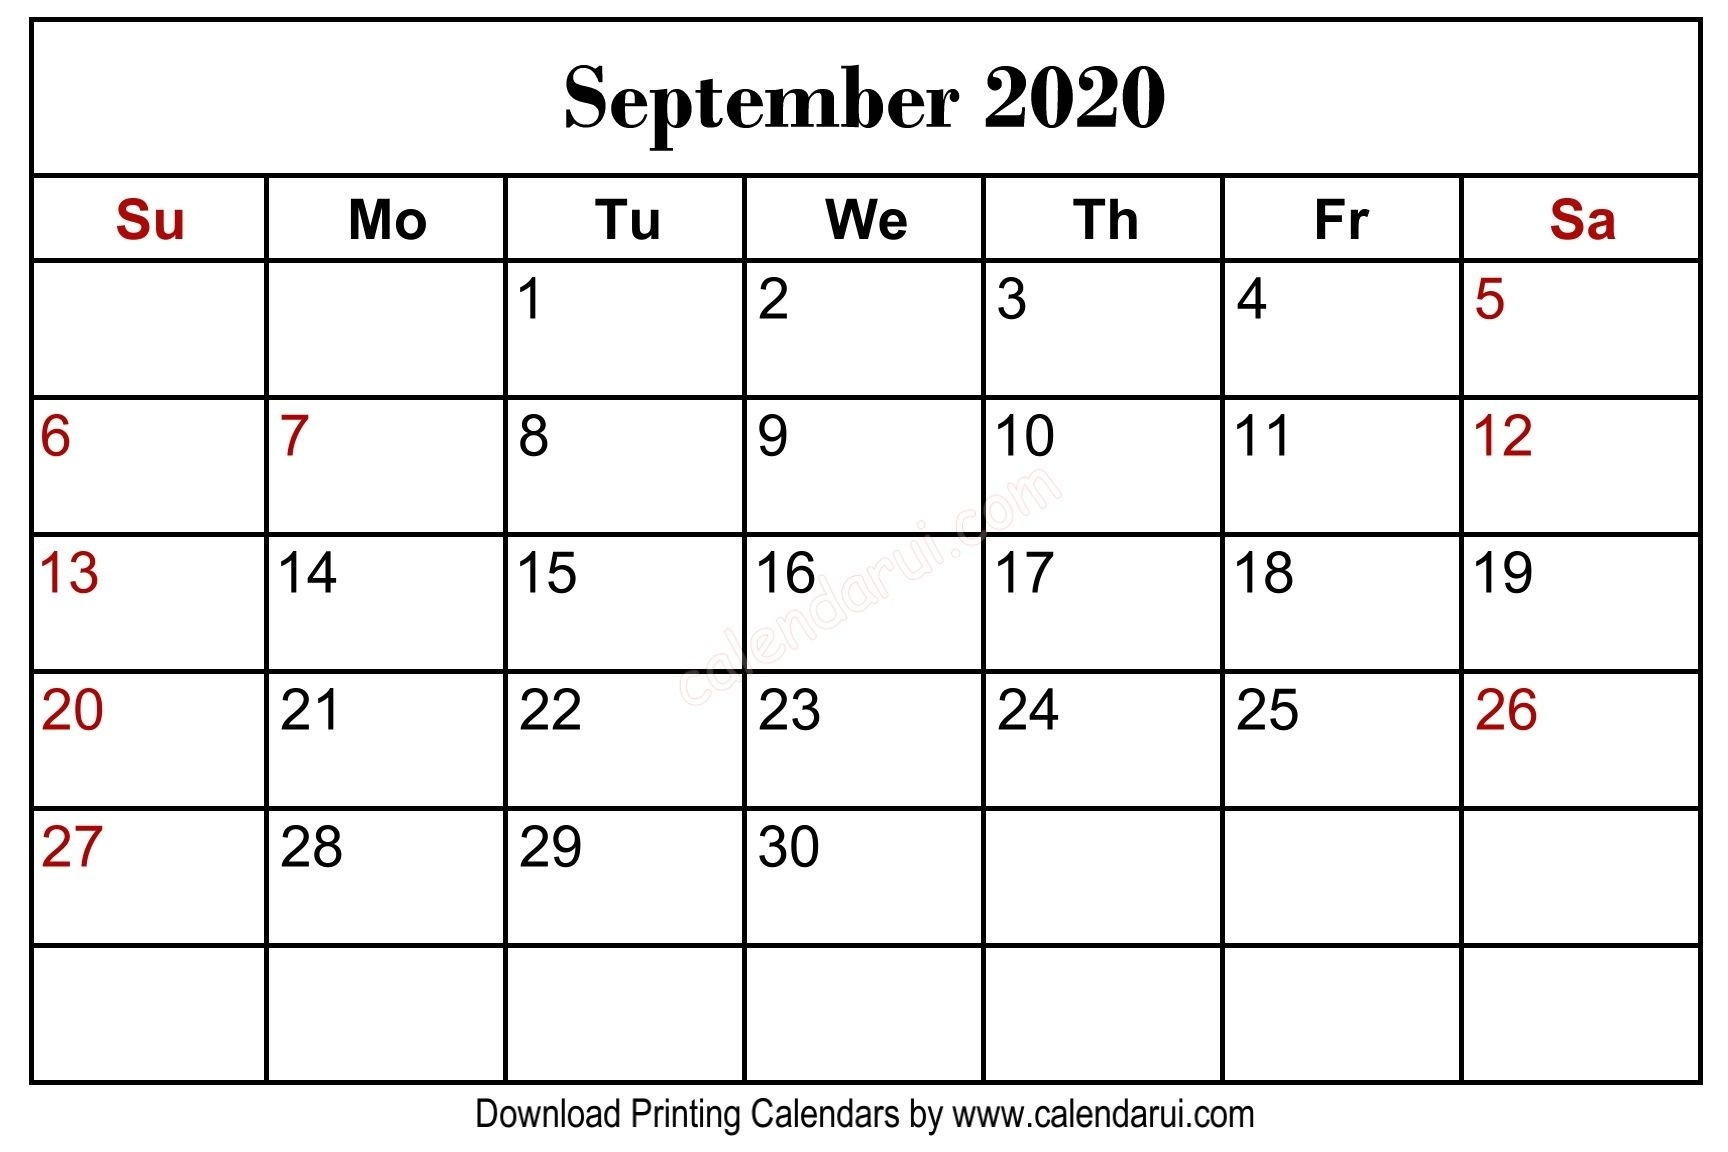 September 2020 Blank Calendar Printable Free Download Template_Blank Calendar September 2020 Vertical